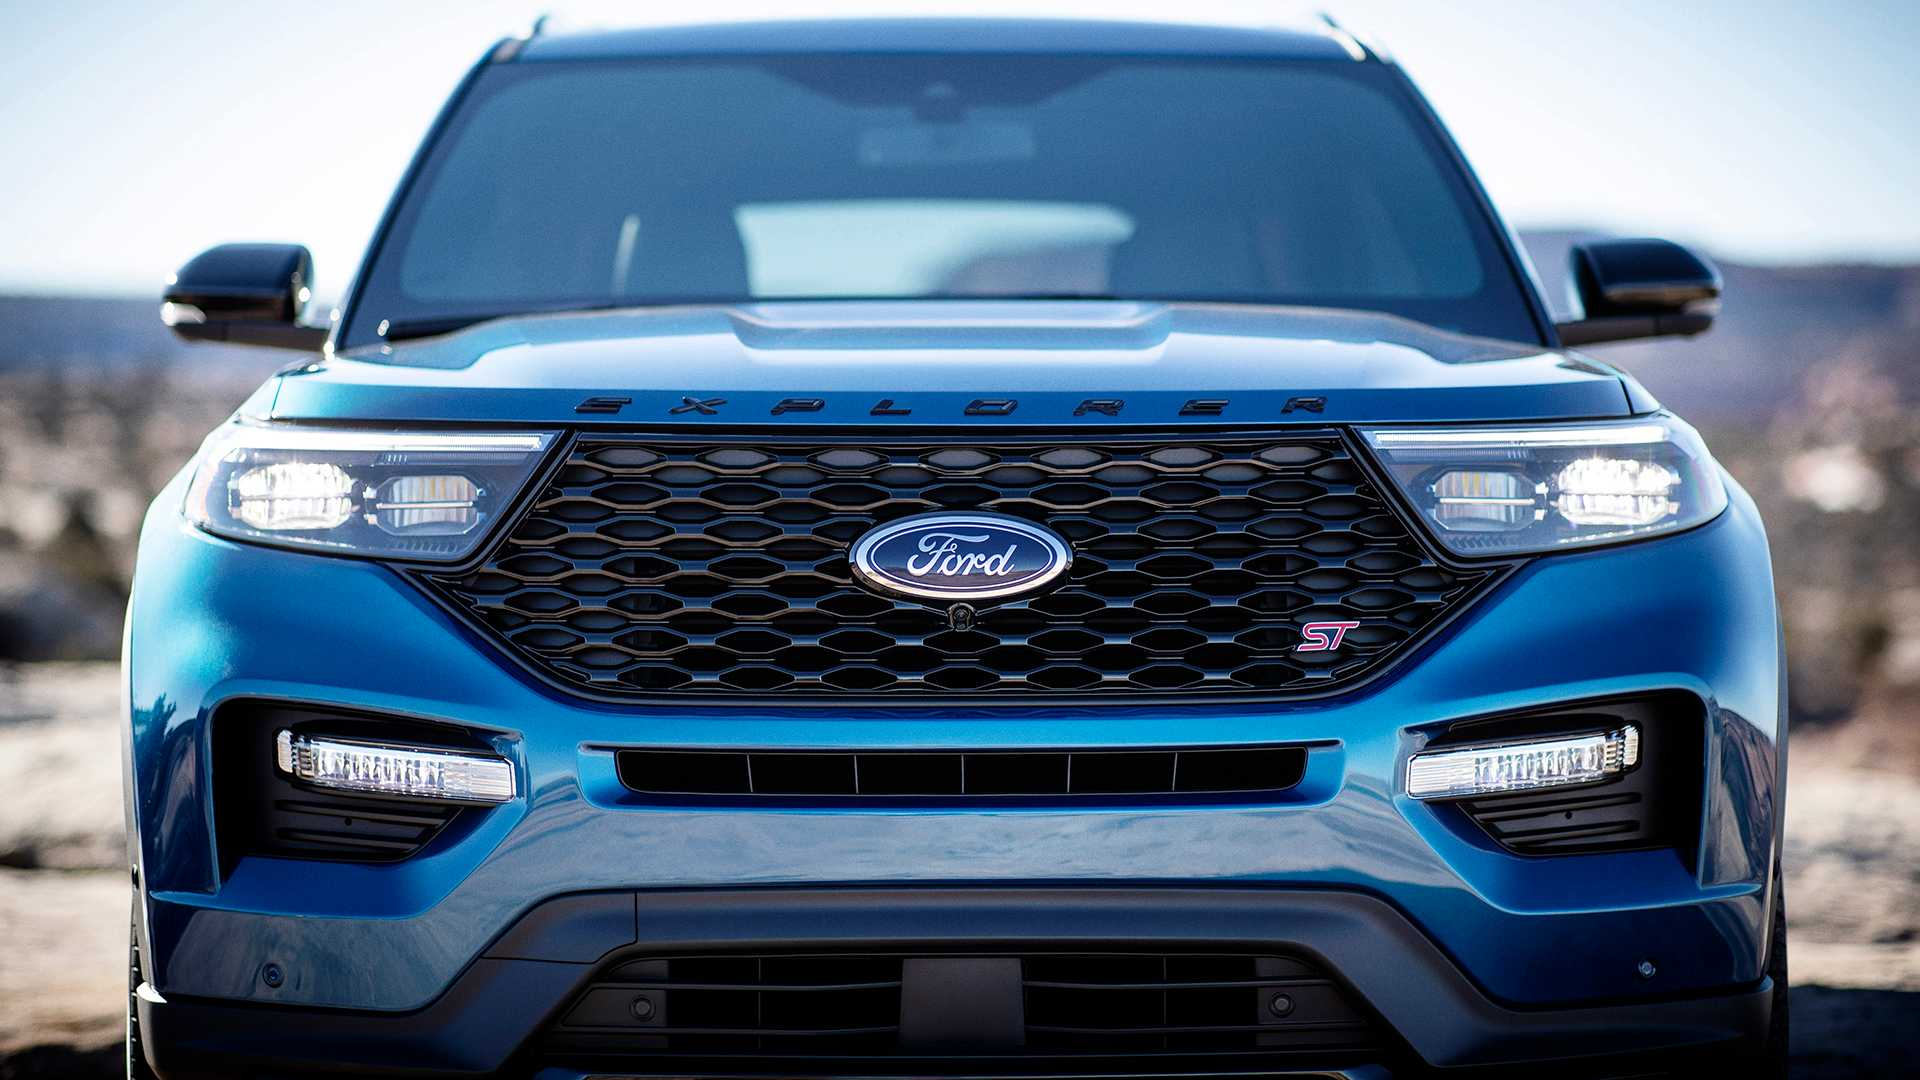 73 The Best Ford Usa Explorer 2020 Specs